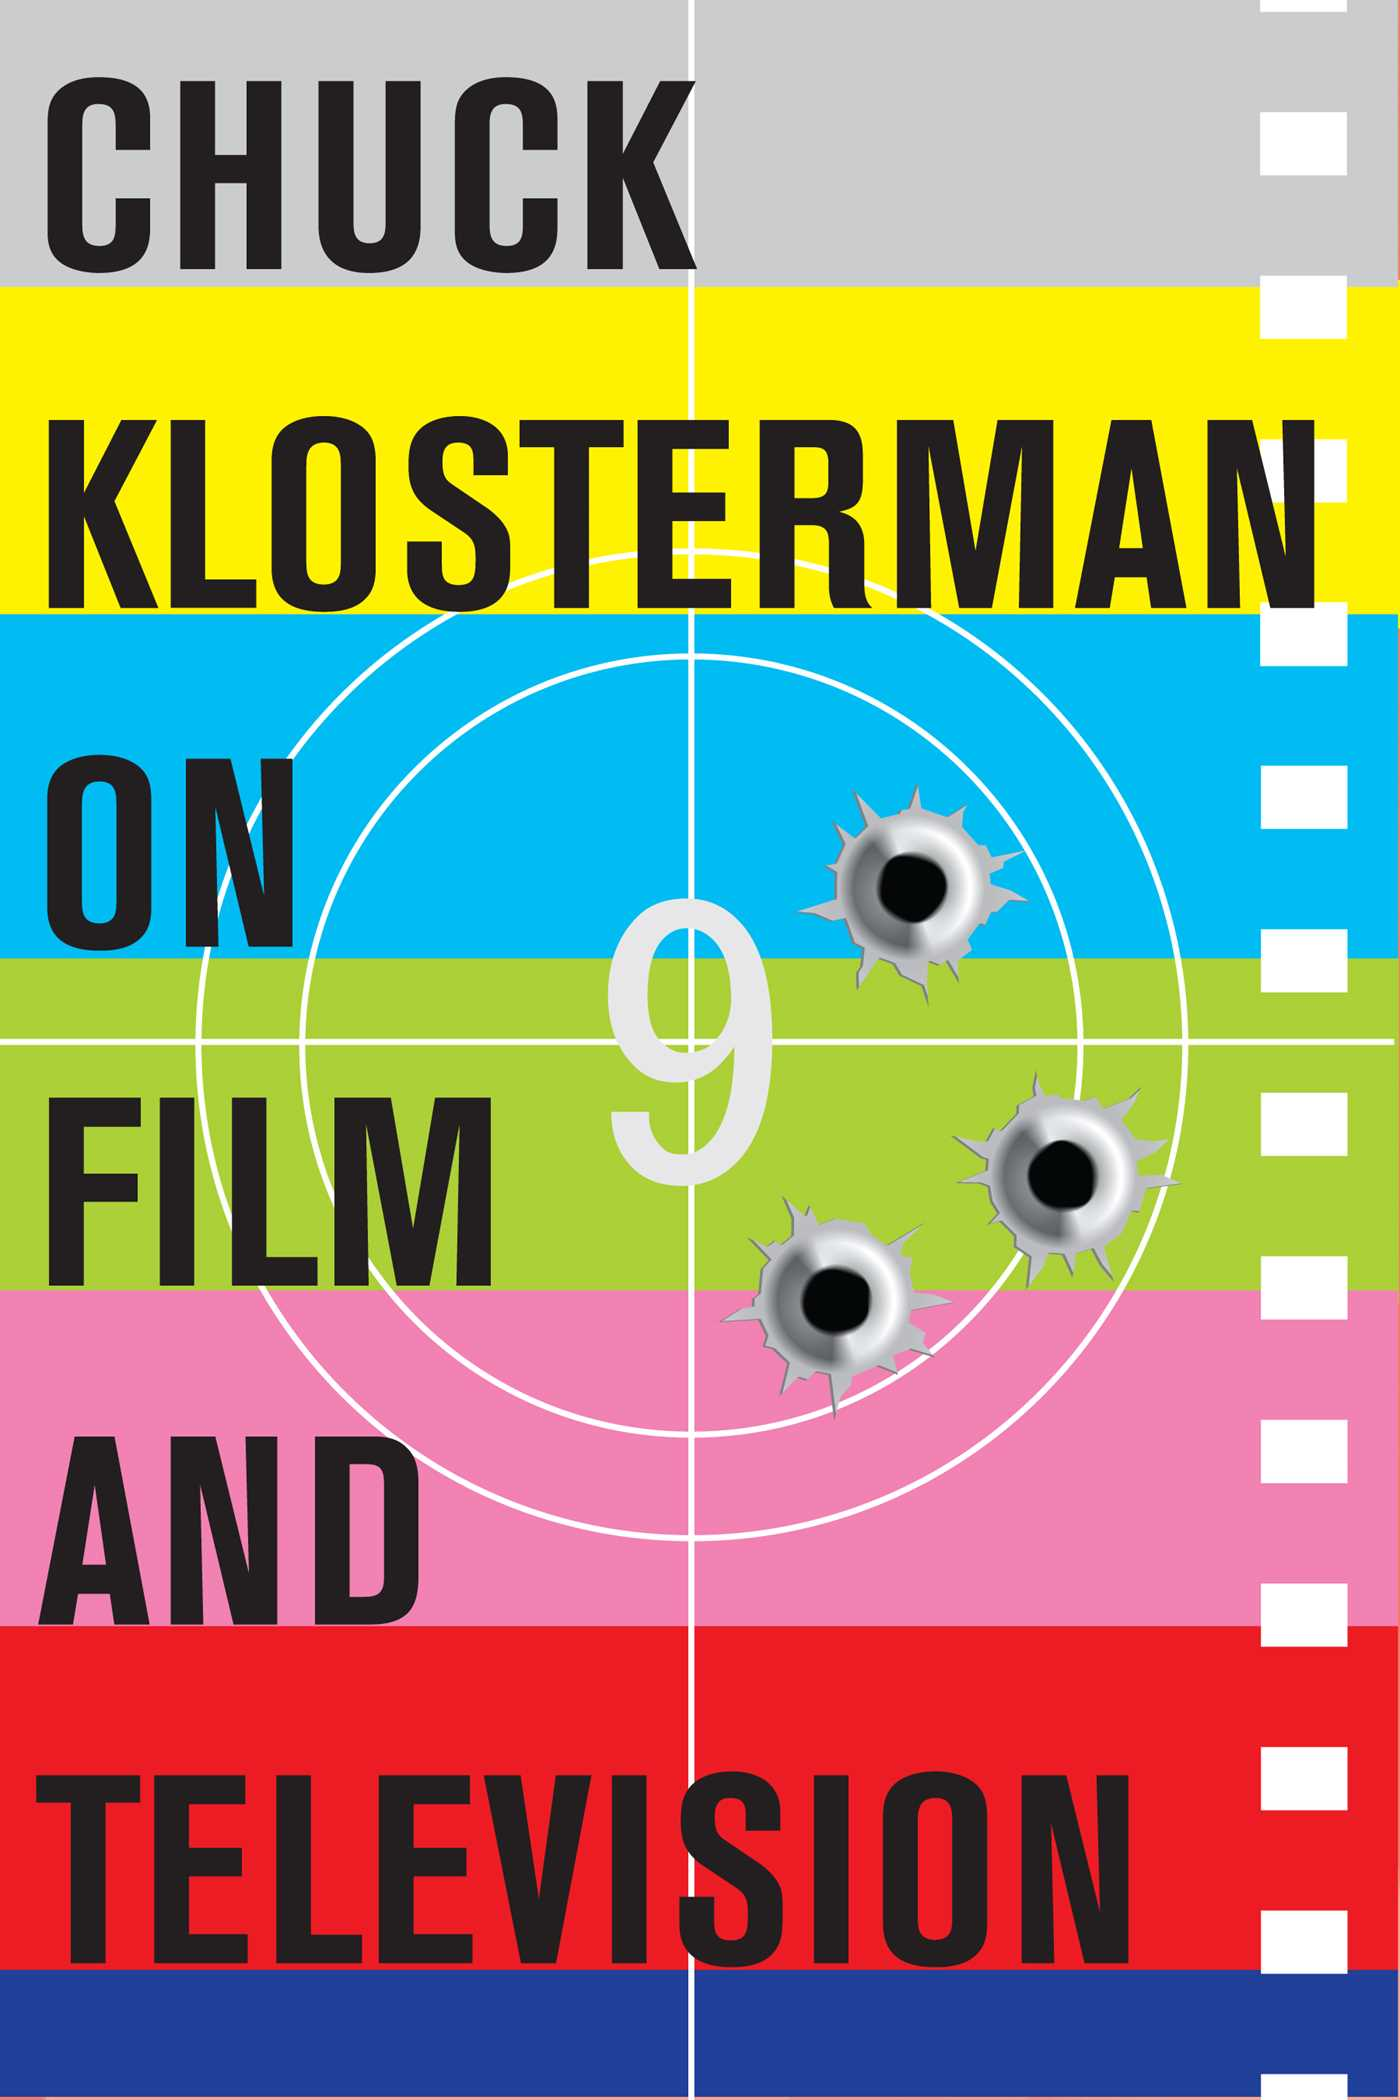 Chuck klosterman on film and television 9781451624786 hr